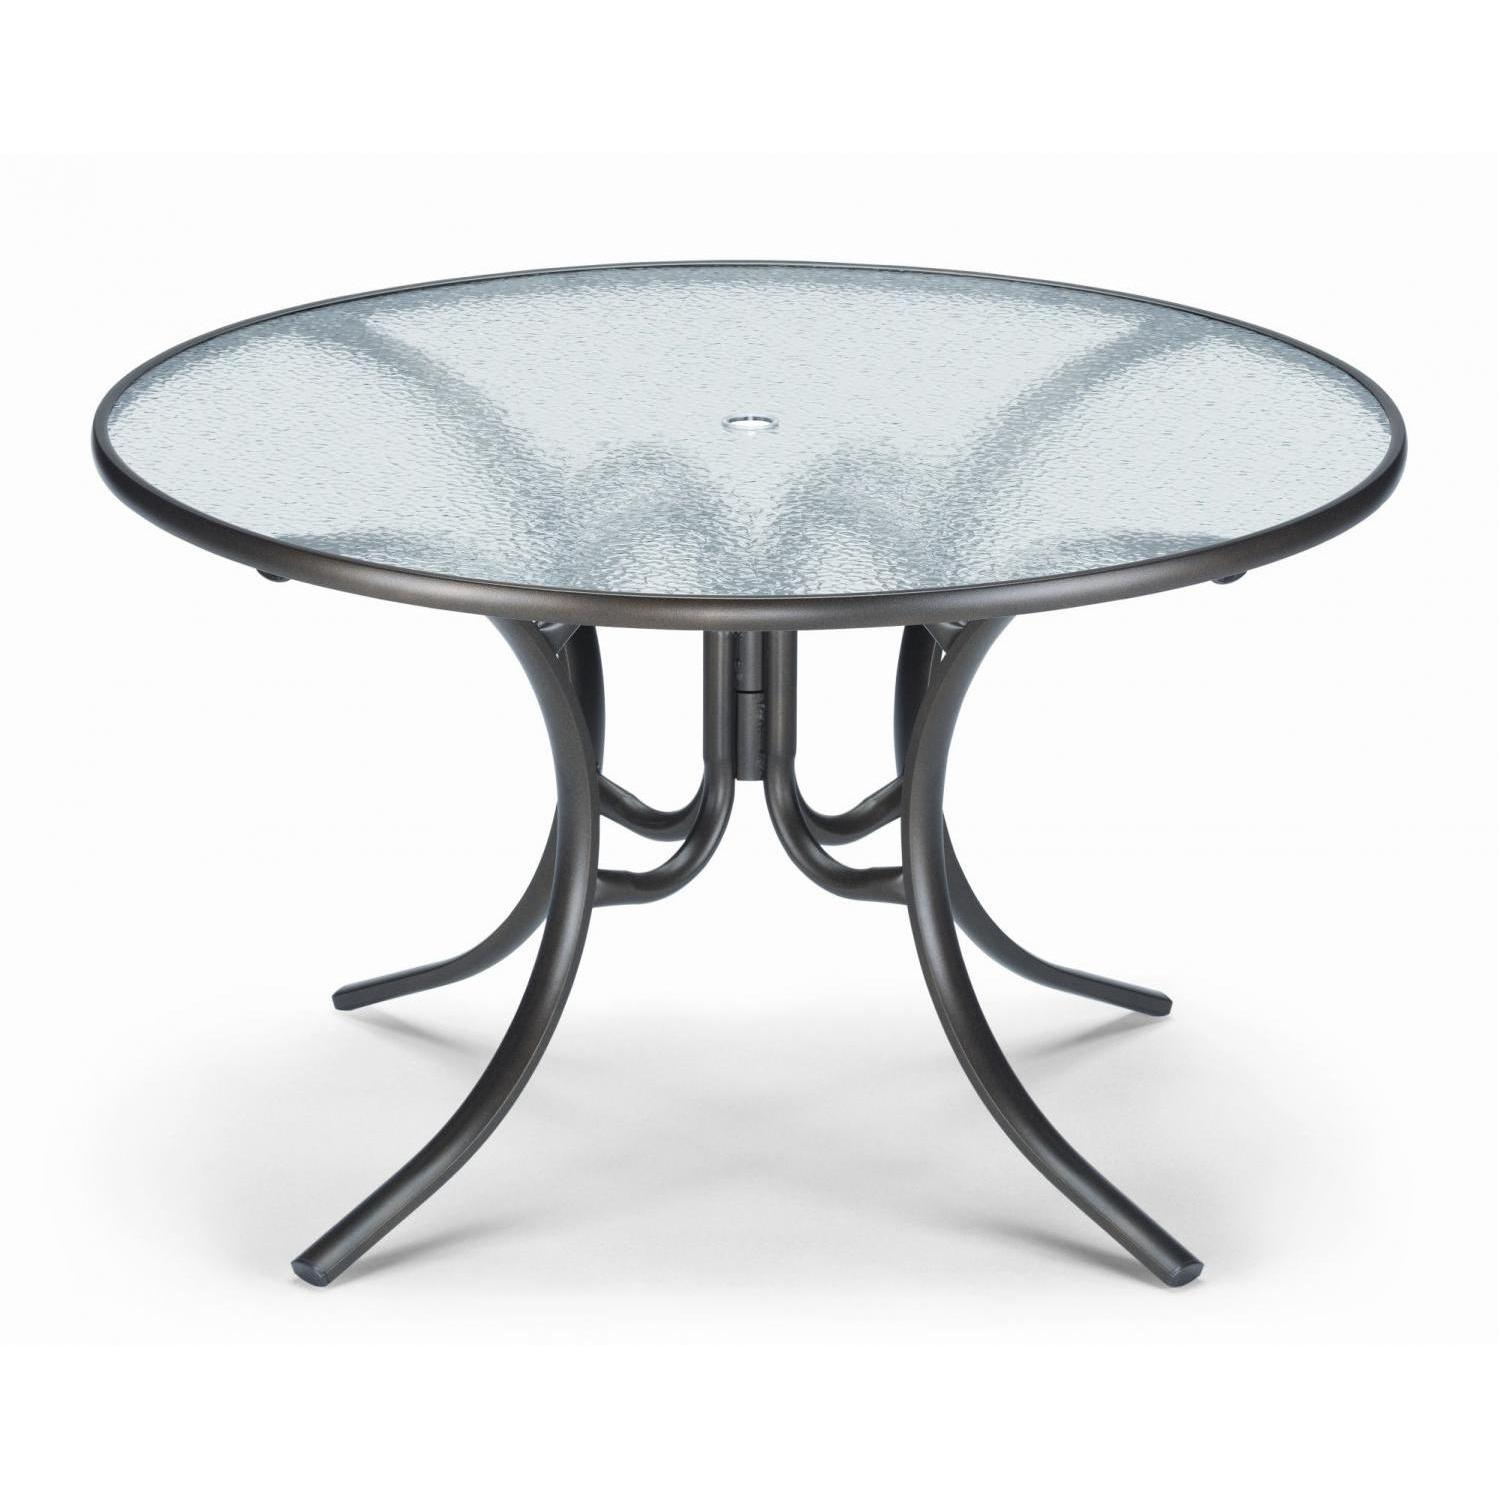 Telescope Casual 48 Inch Round Aluminum Patio Dining Table With Glass Top Textured Black Round Patio Table Glass Round Dining Table Glass Top Dining Table Glass top patio dining table